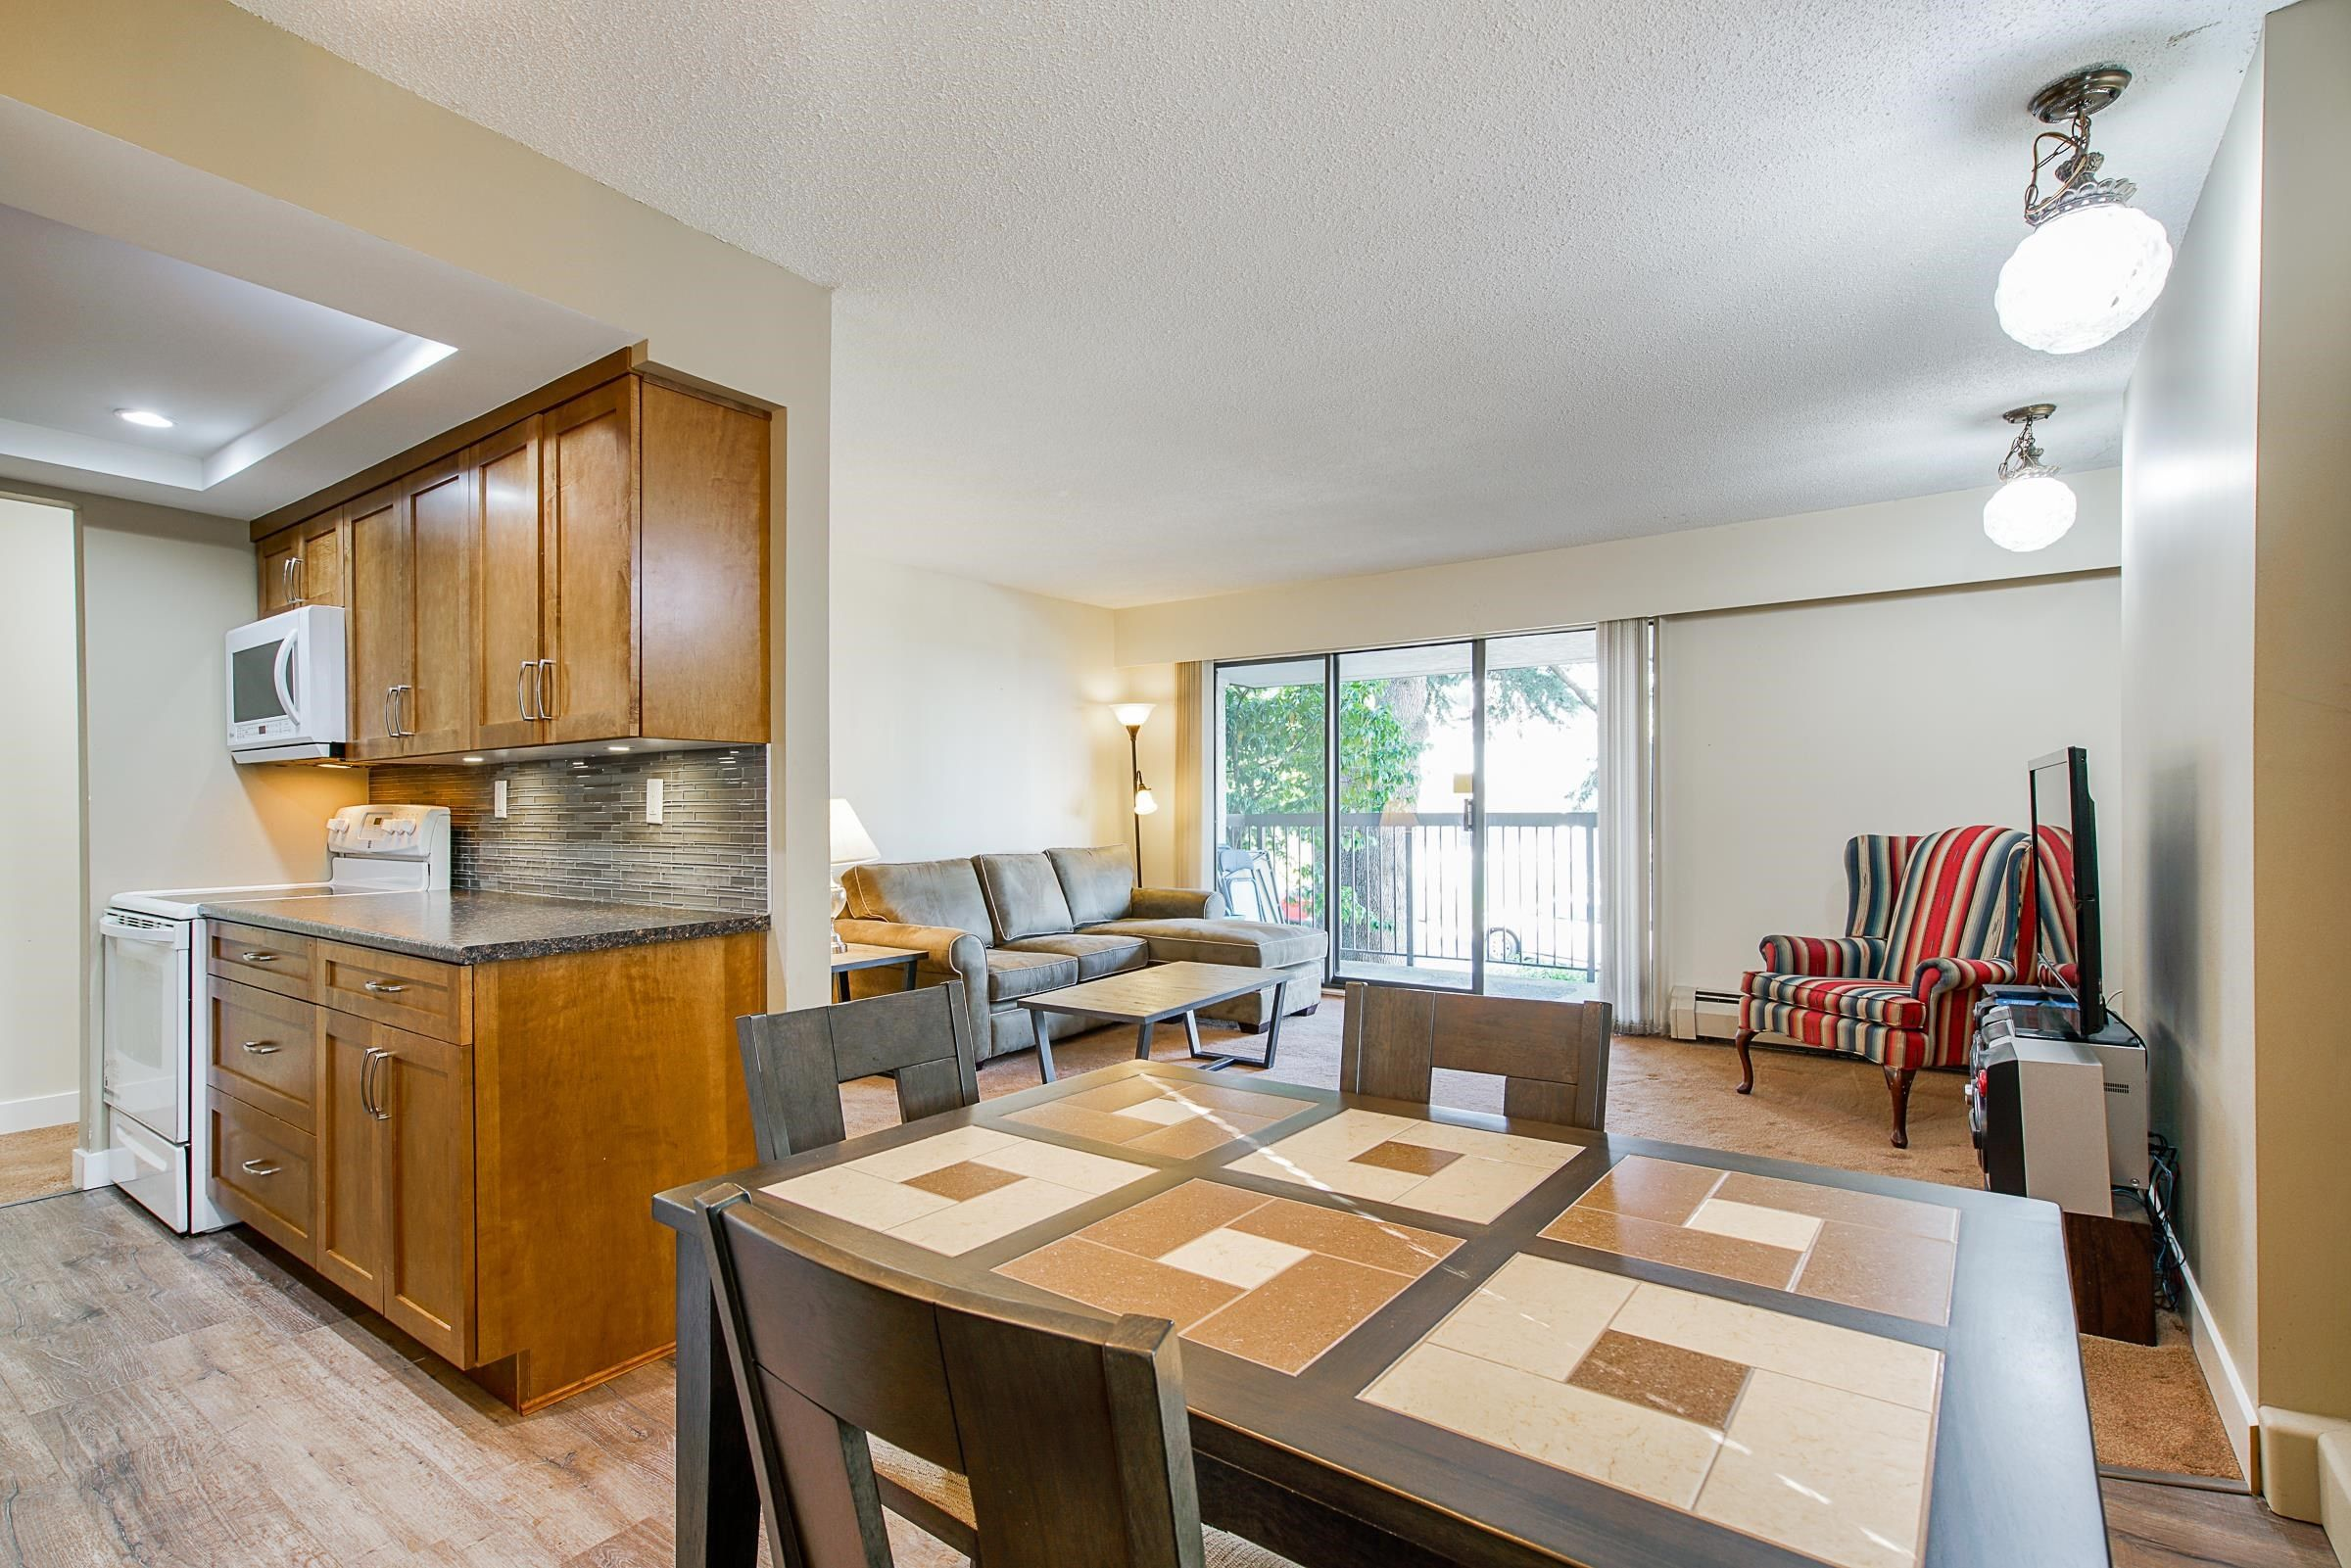 """Main Photo: 106 1025 CORNWALL Street in New Westminster: Uptown NW Condo for sale in """"Cornwall Place"""" : MLS®# R2609850"""